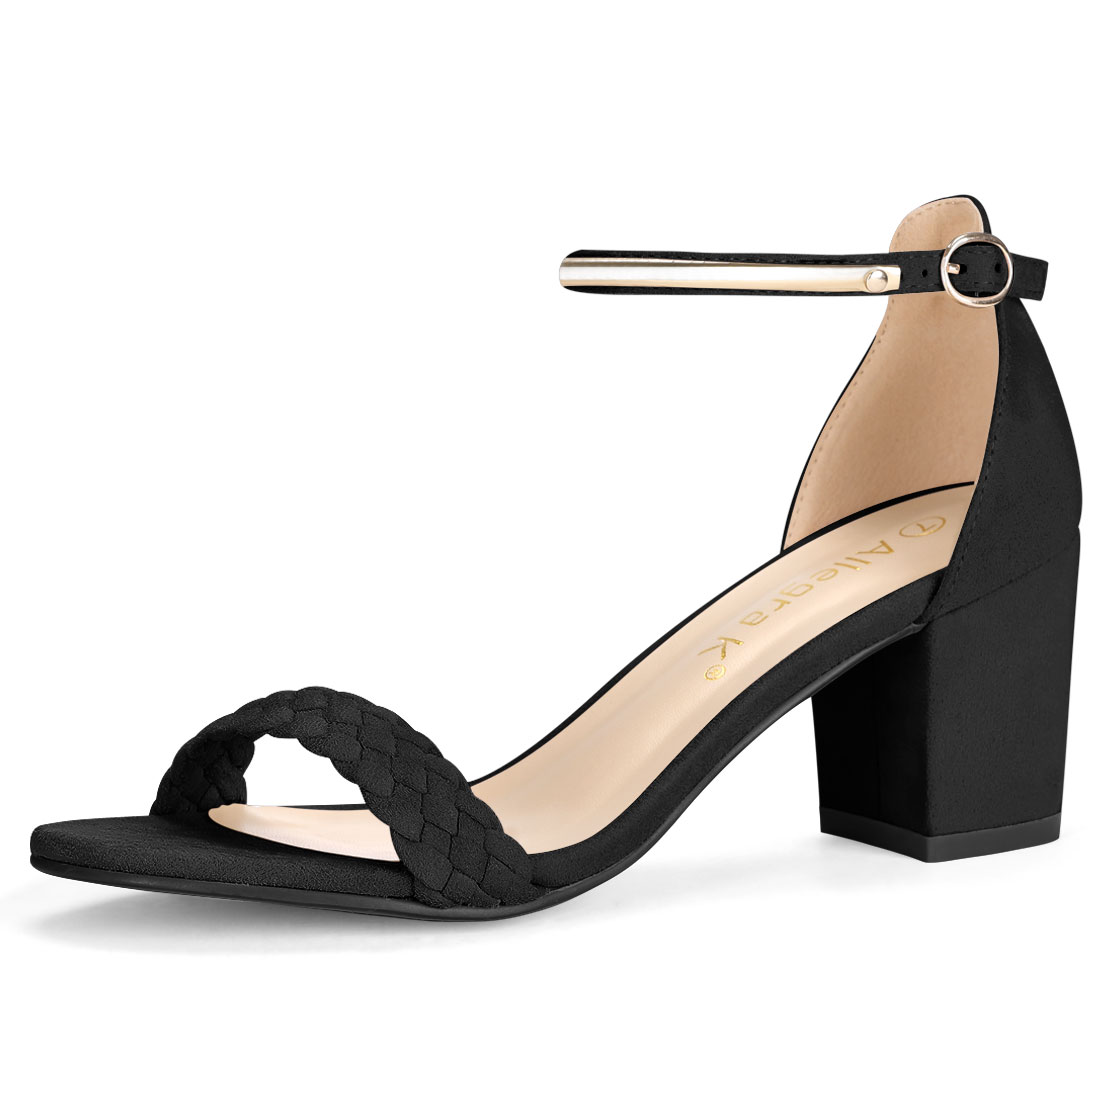 Women Open Toe Mid Heel Braided Ankle Strap Sandals Black US 10